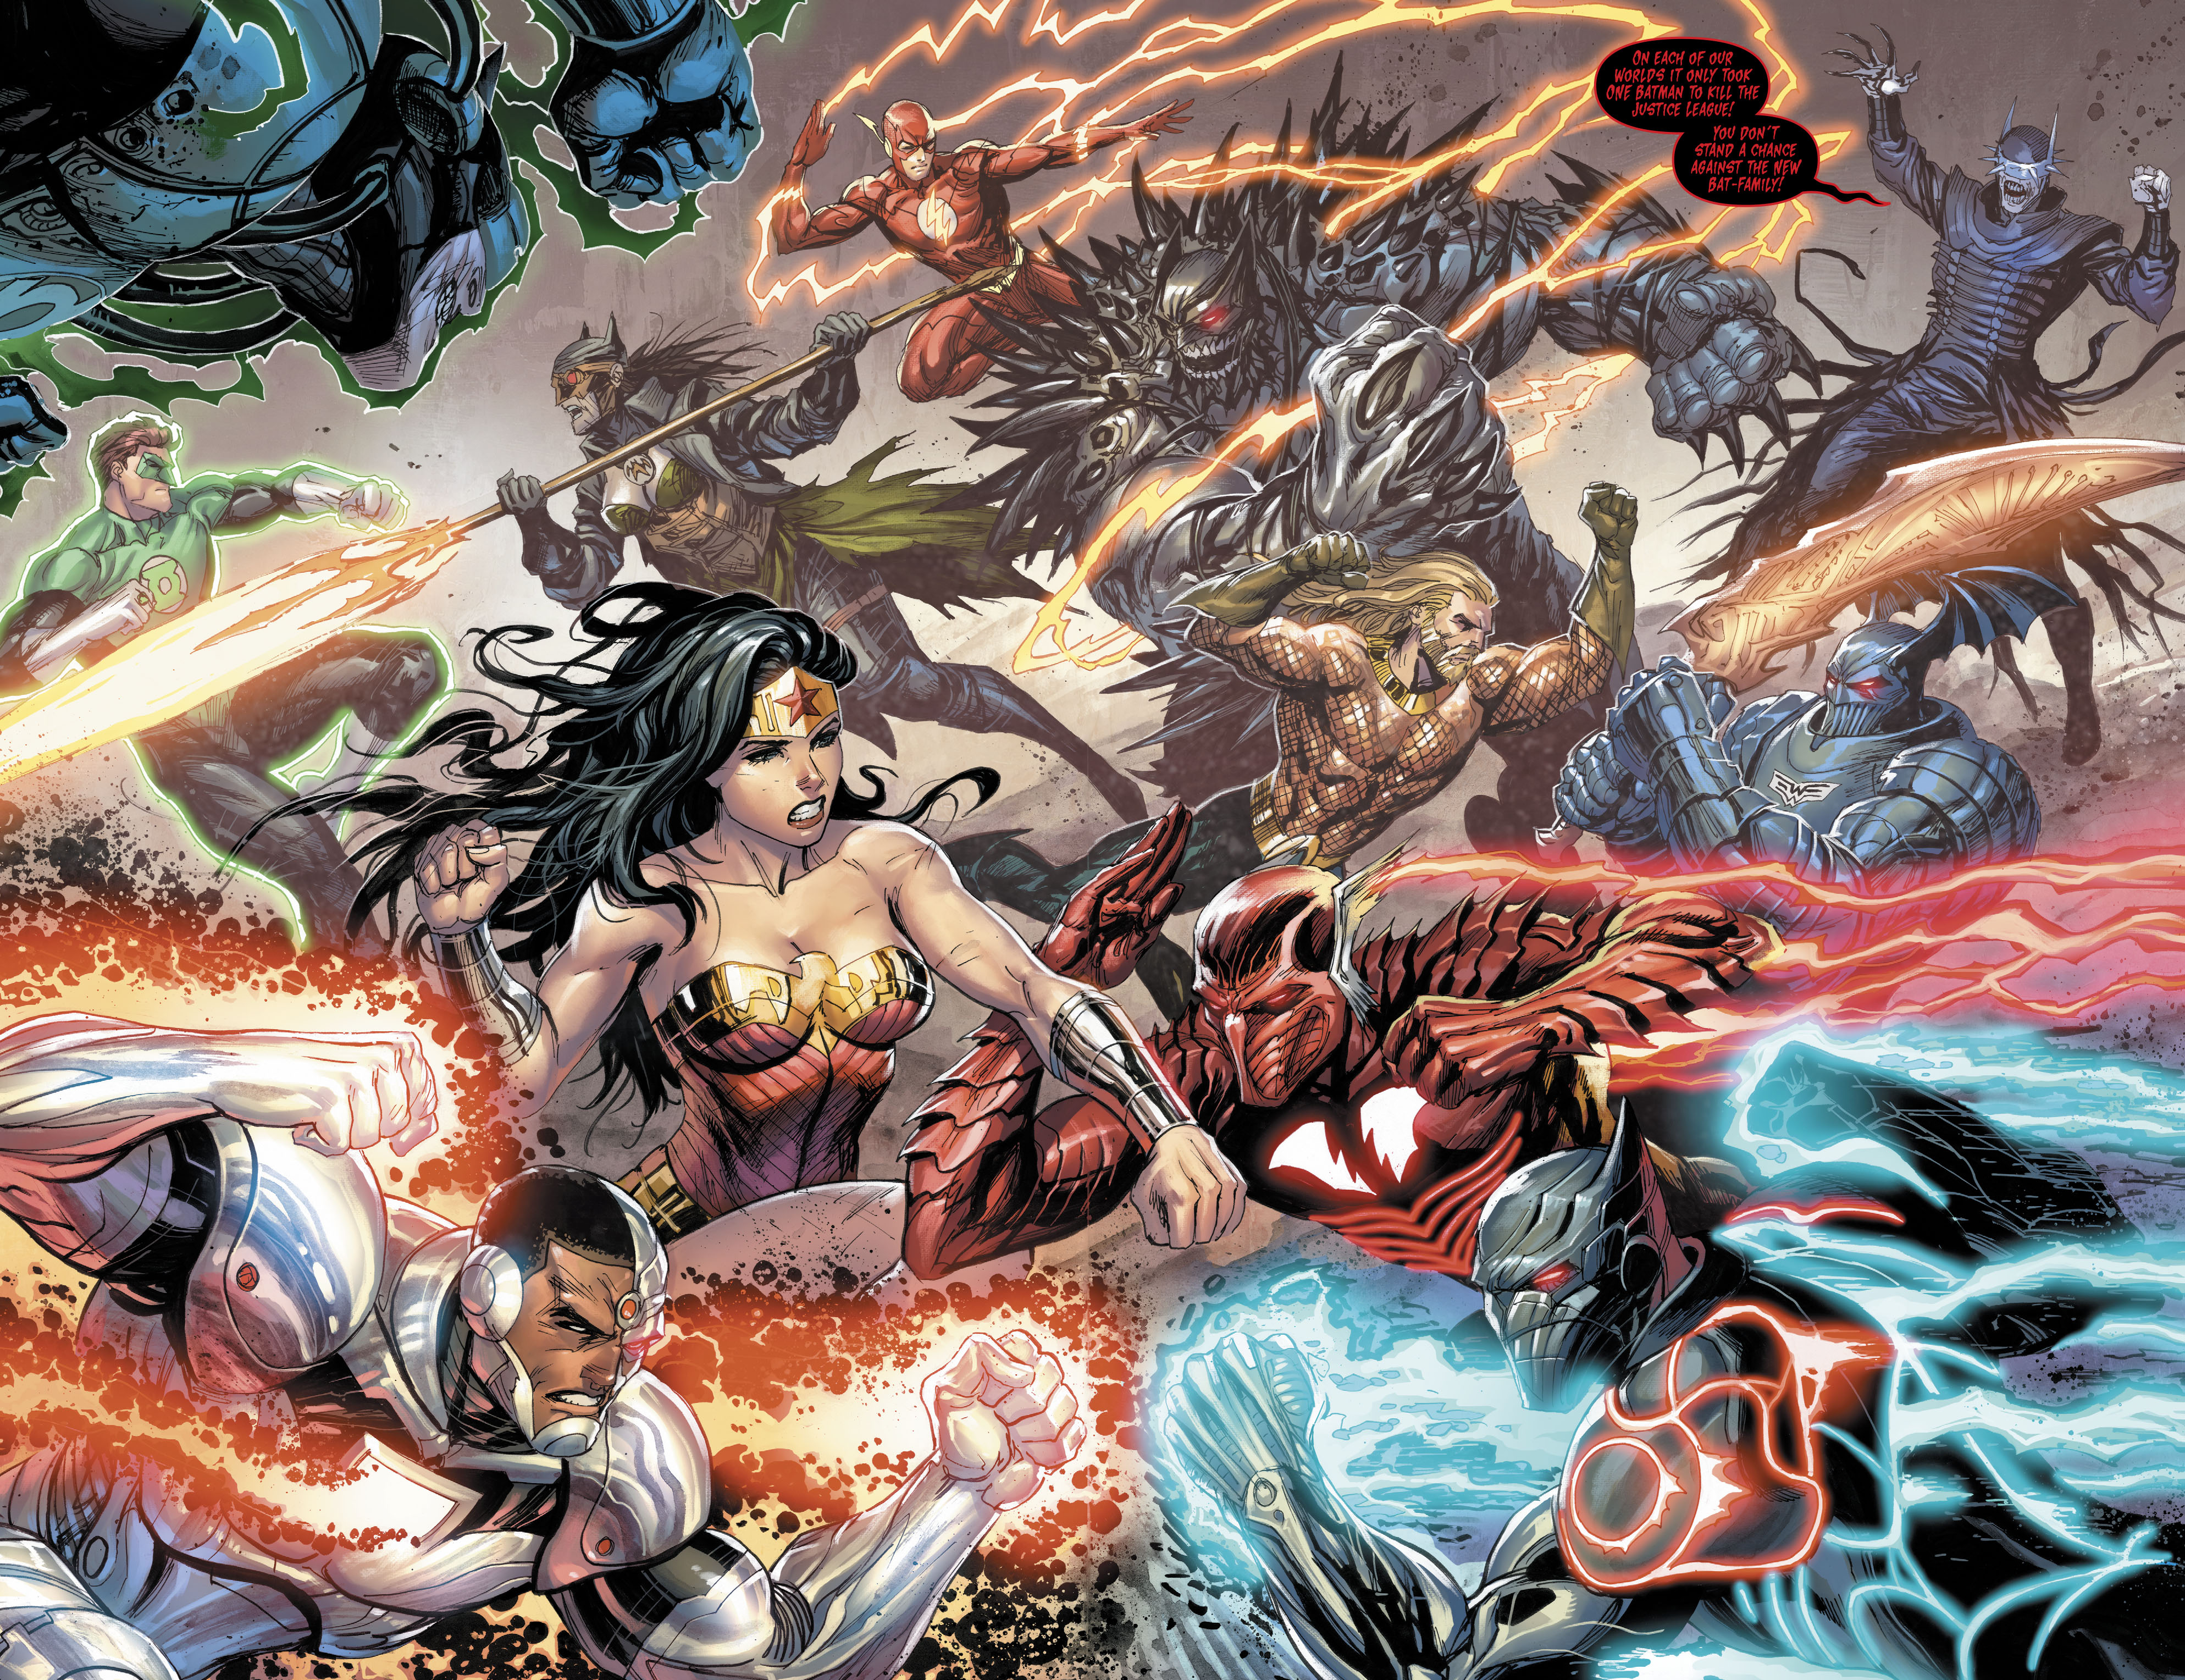 Cyborg and why he's important to the Justice League